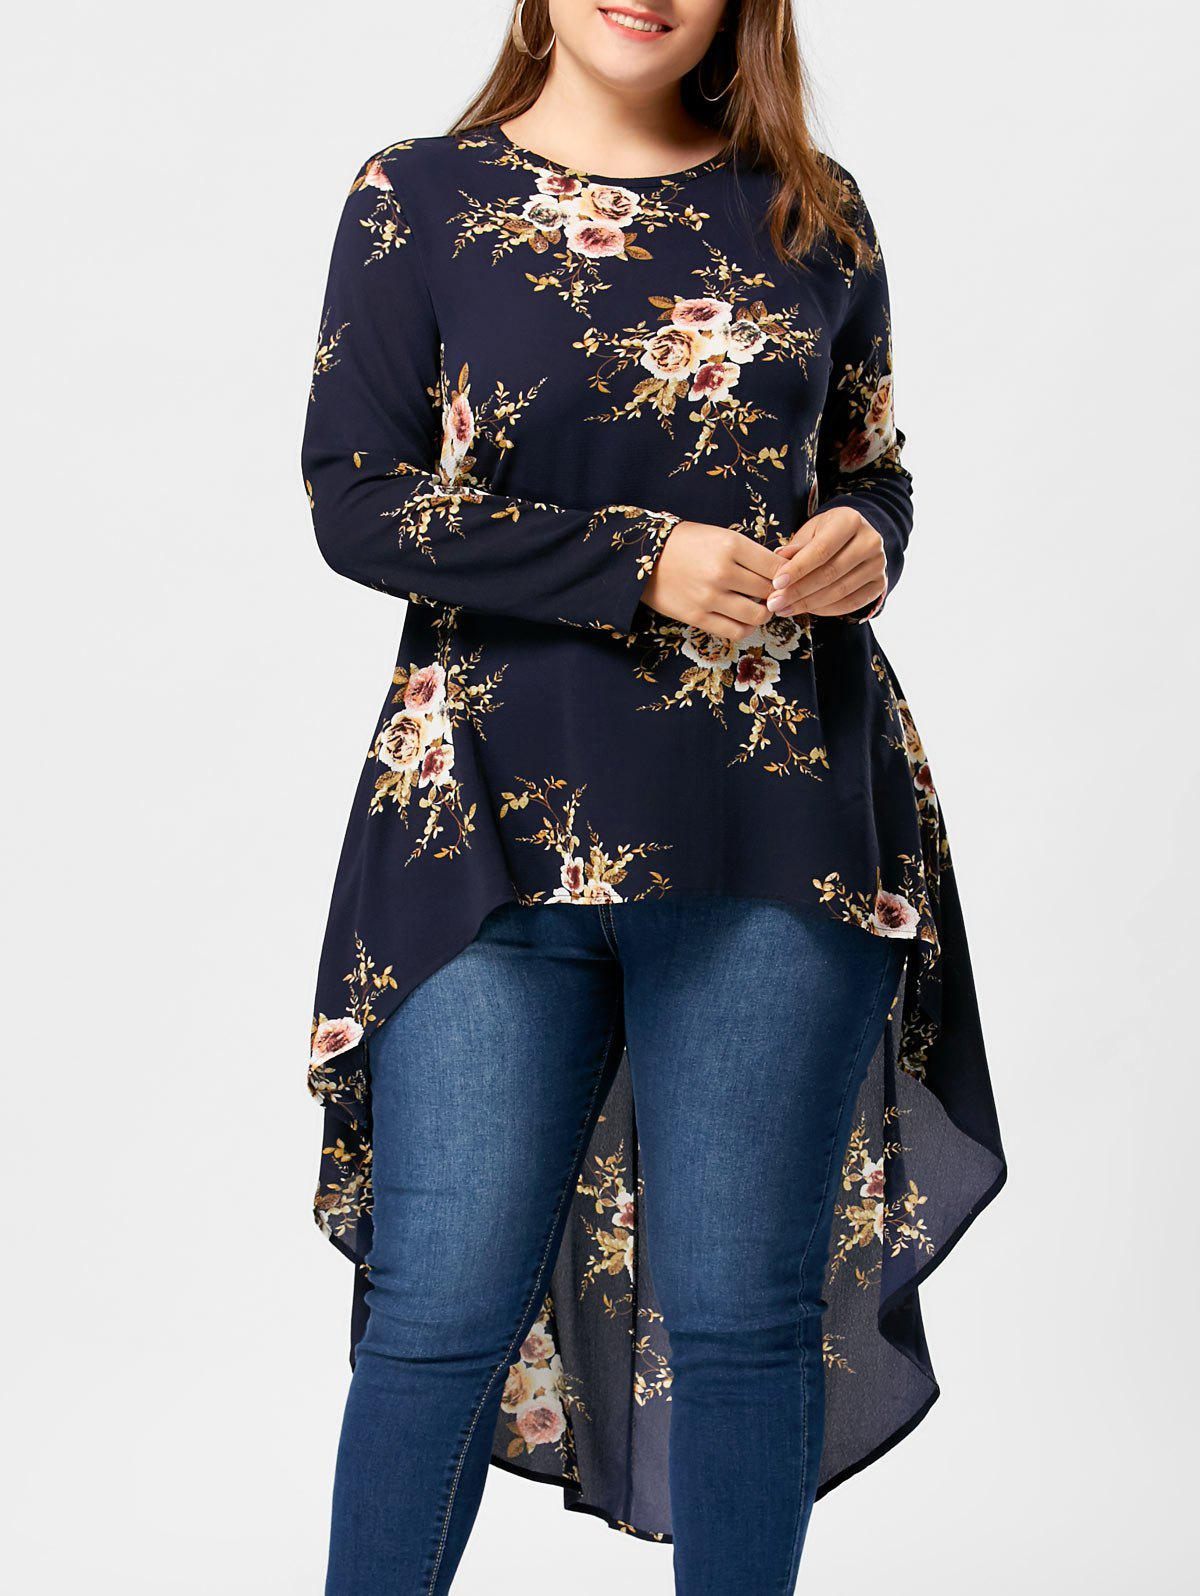 Plus Size Floral High Low Hem BlouseWOMEN<br><br>Size: XL; Color: CADETBLUE; Material: Polyester; Shirt Length: Long; Sleeve Length: Full; Collar: Crew Neck; Style: Casual; Season: Fall,Spring,Summer; Pattern Type: Floral; Weight: 0.3400kg; Package Contents: 1 x Blouse;